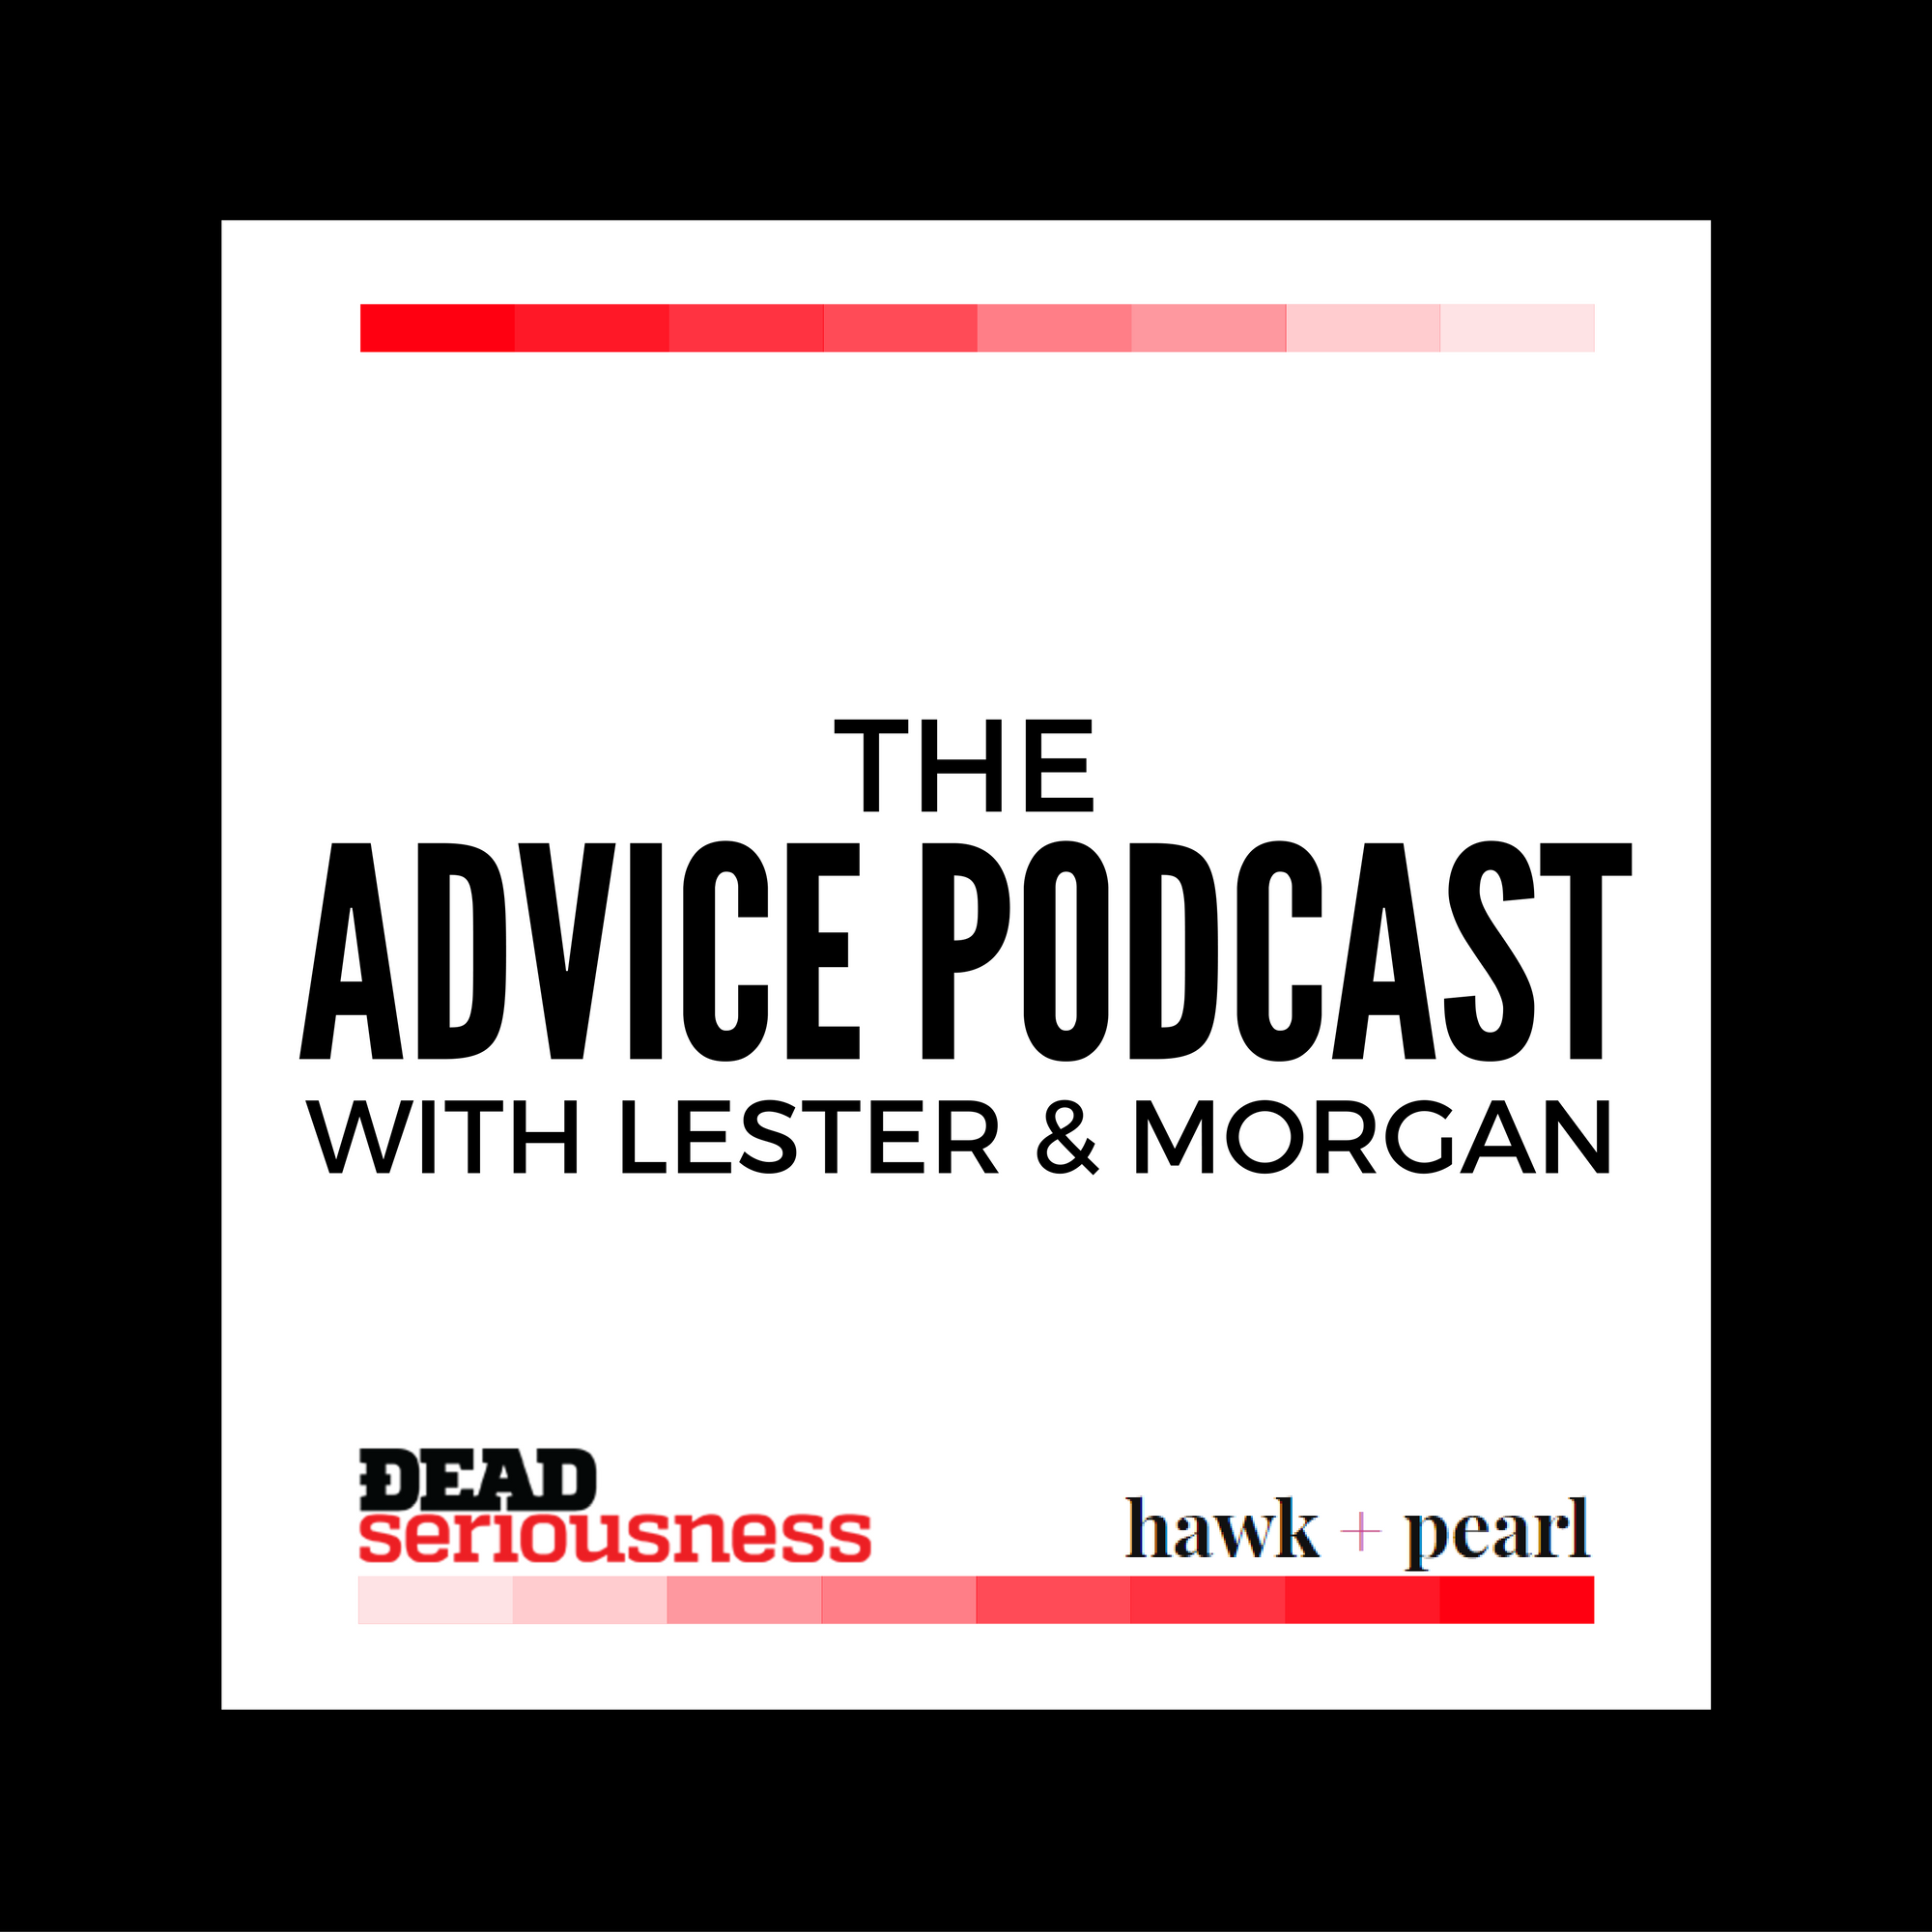 The Advice Podcast Episode 5: Lightning Round OUT NOW!